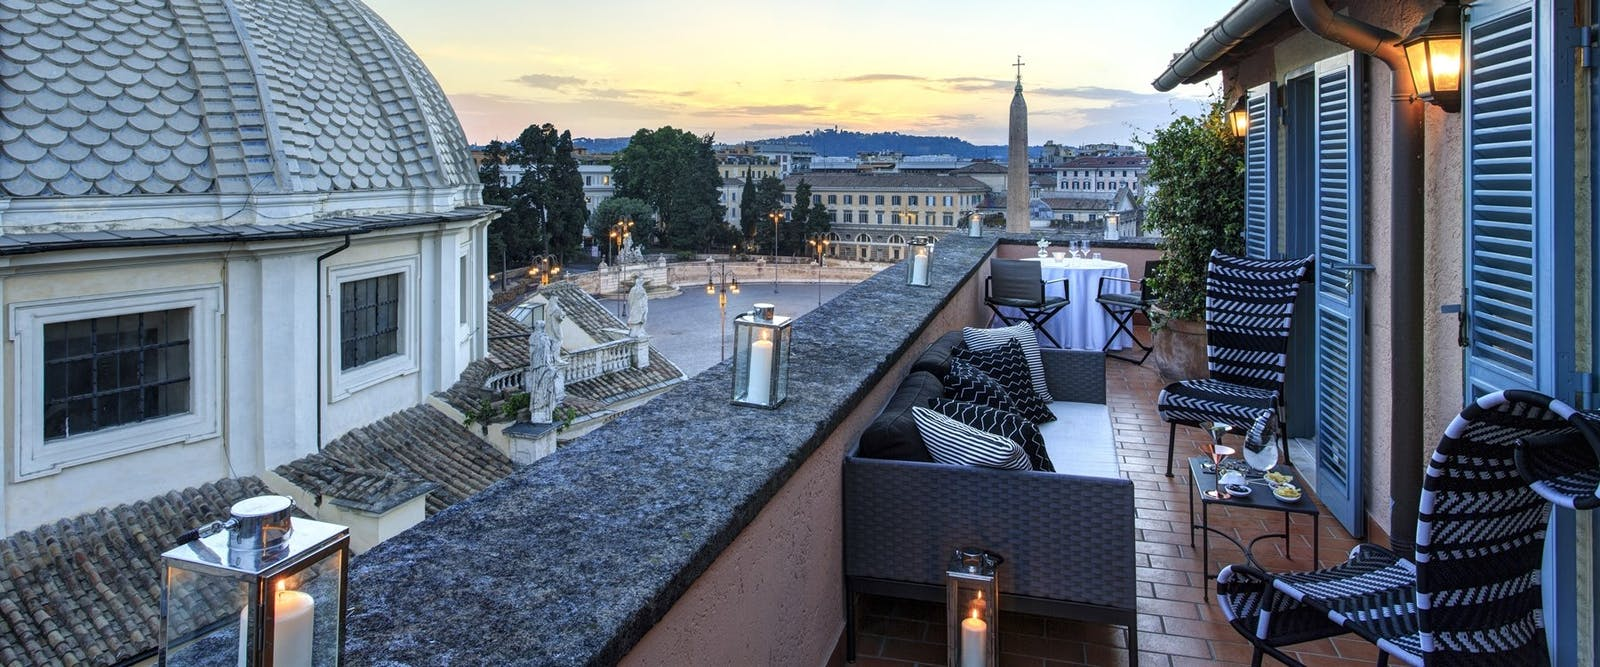 Private Suite Terrace at Hotel De Russie, Rome, Italy